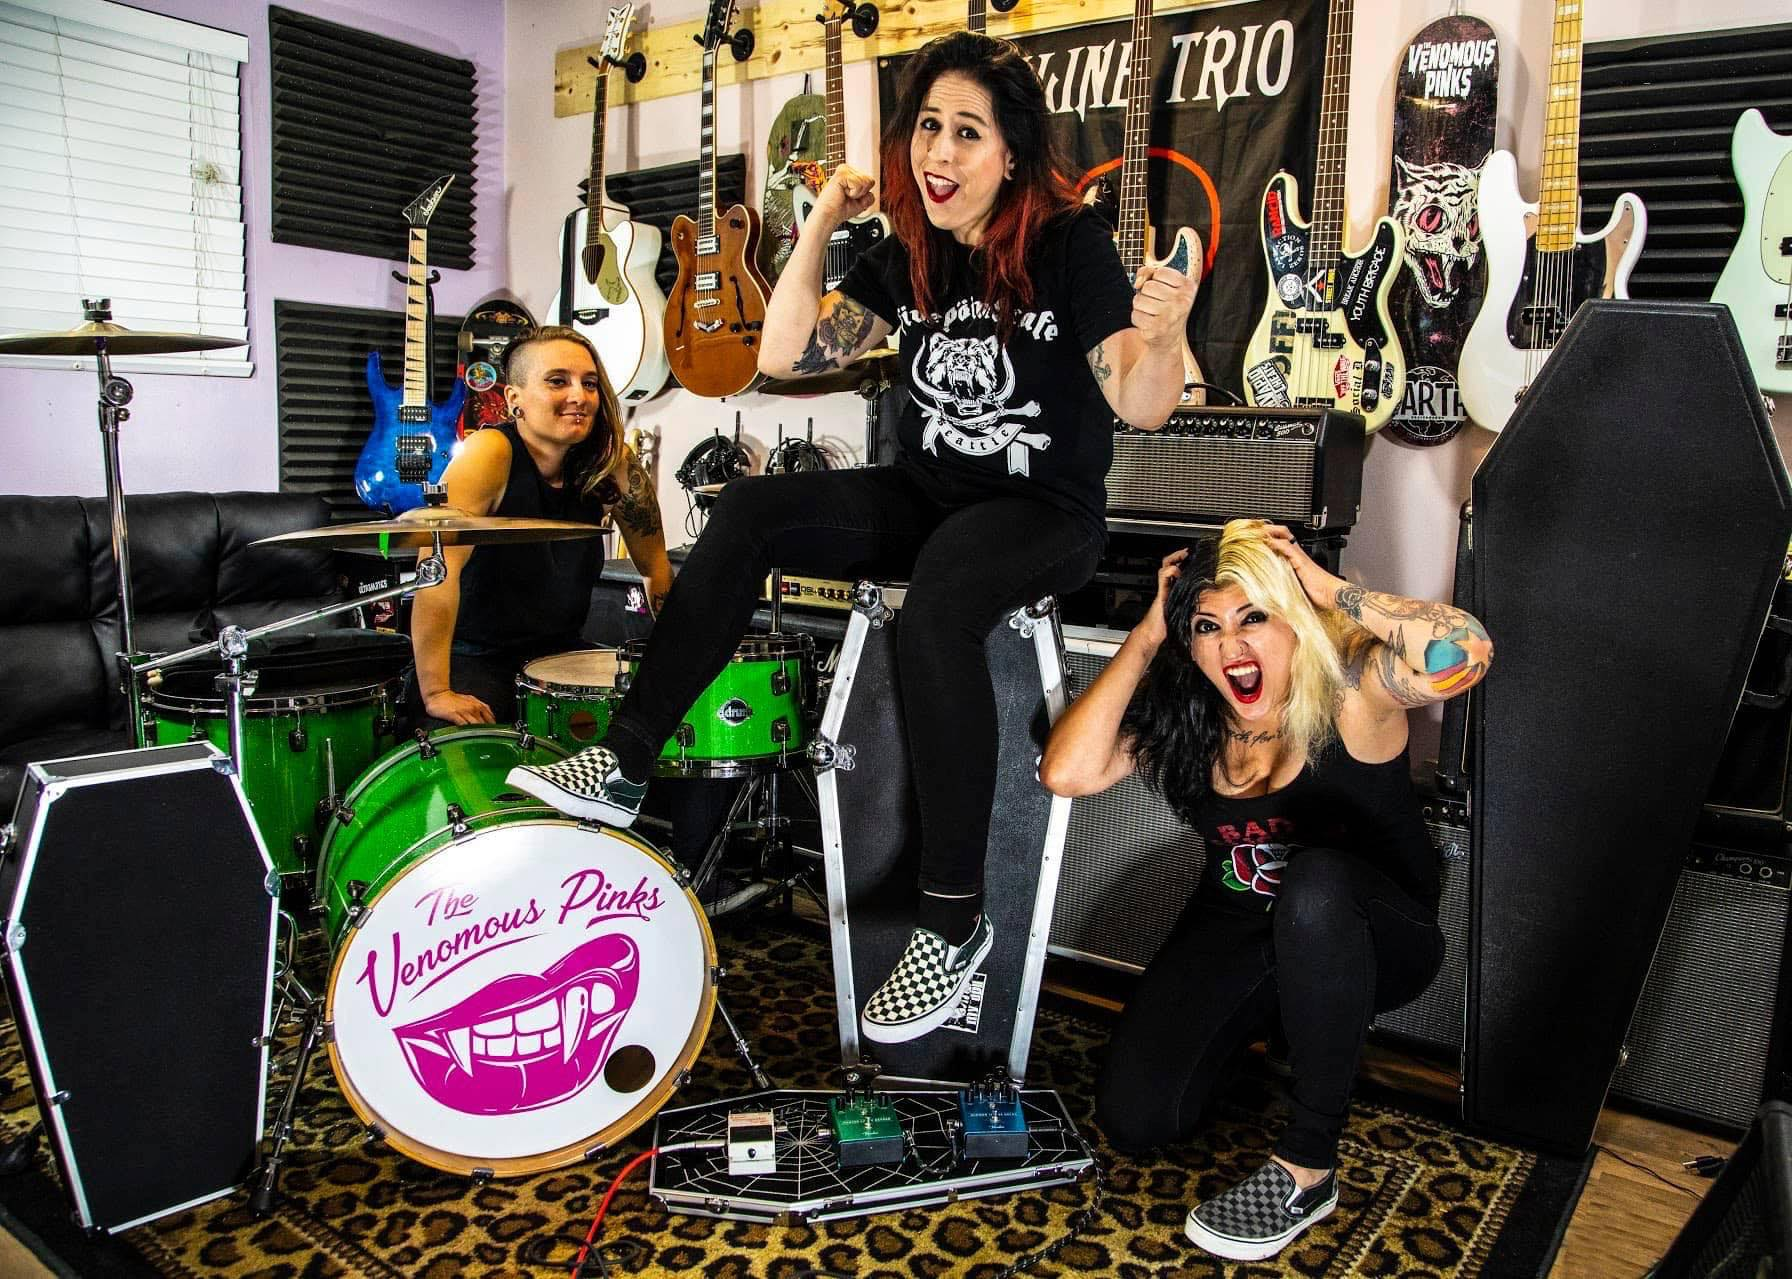 Meet and Greet: The Venomous Pinks